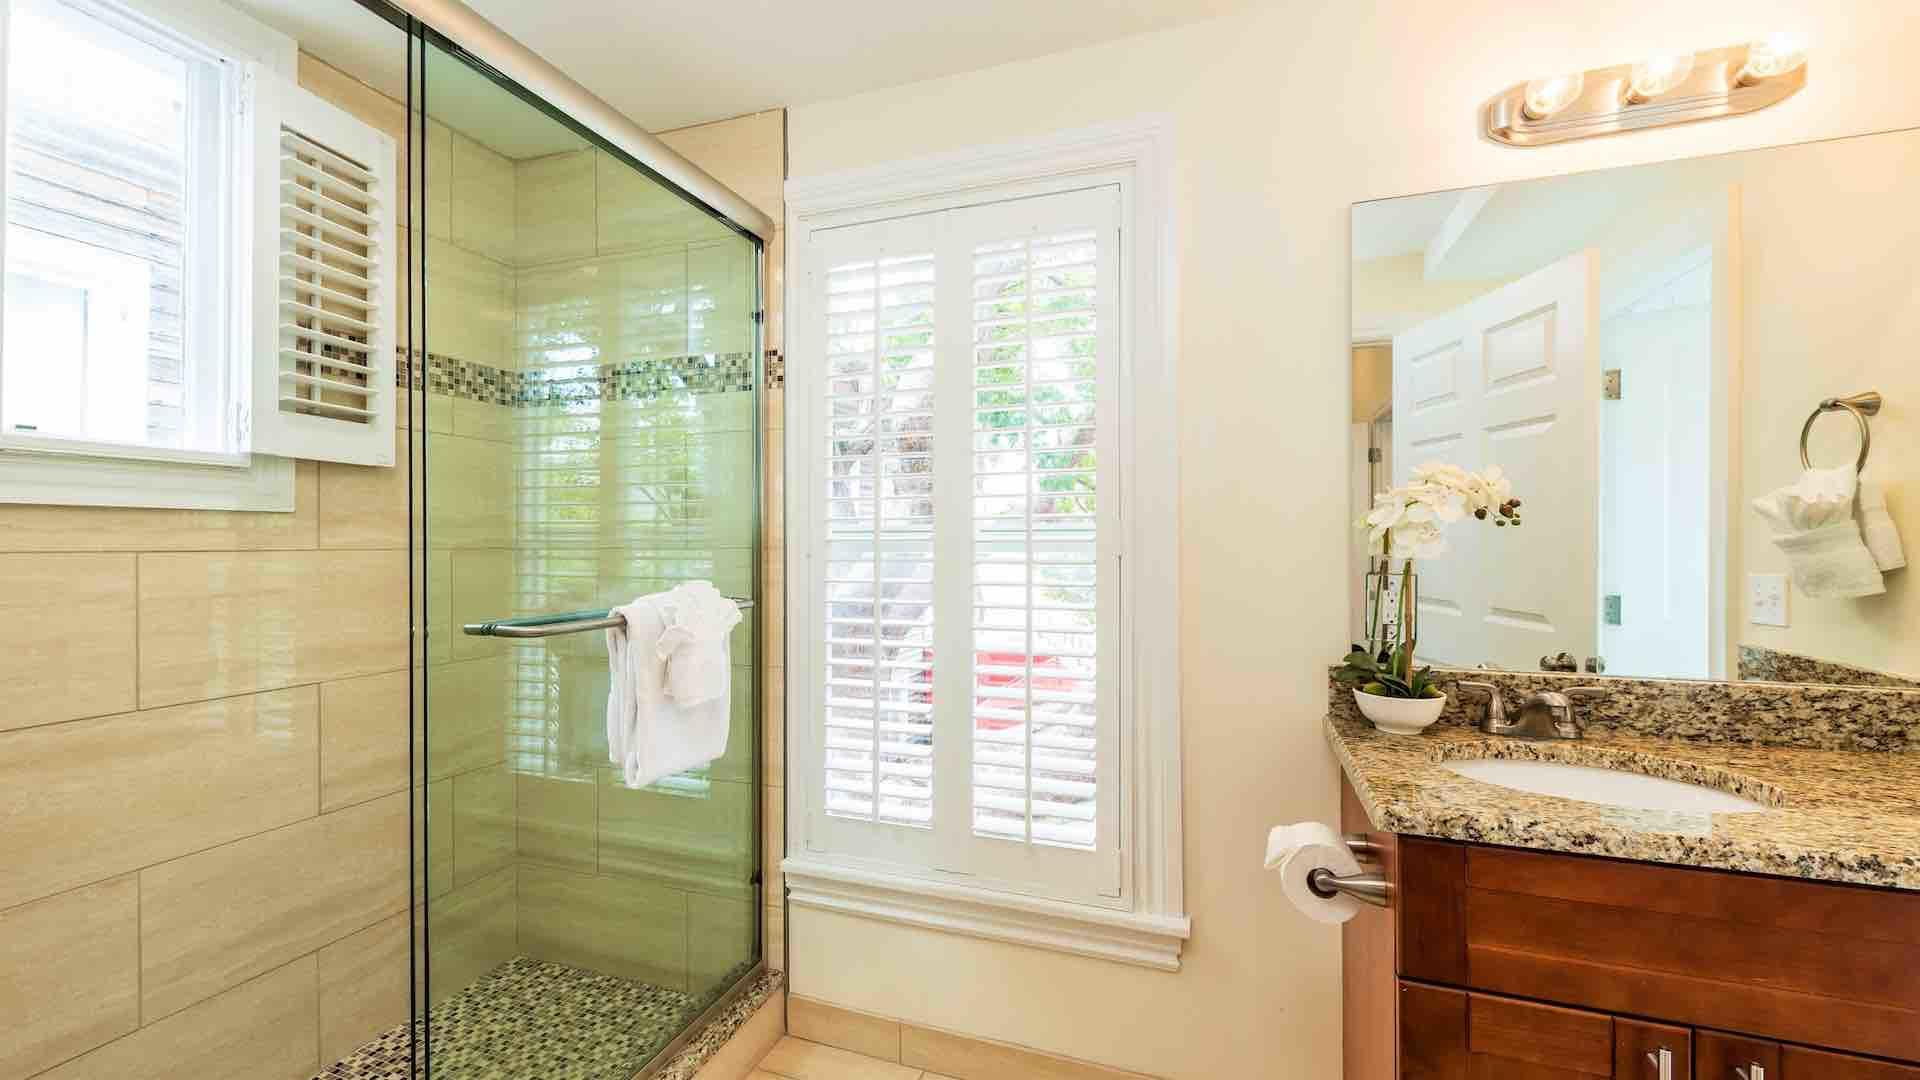 The upstairs master bathroom has a walk-in glass shower...